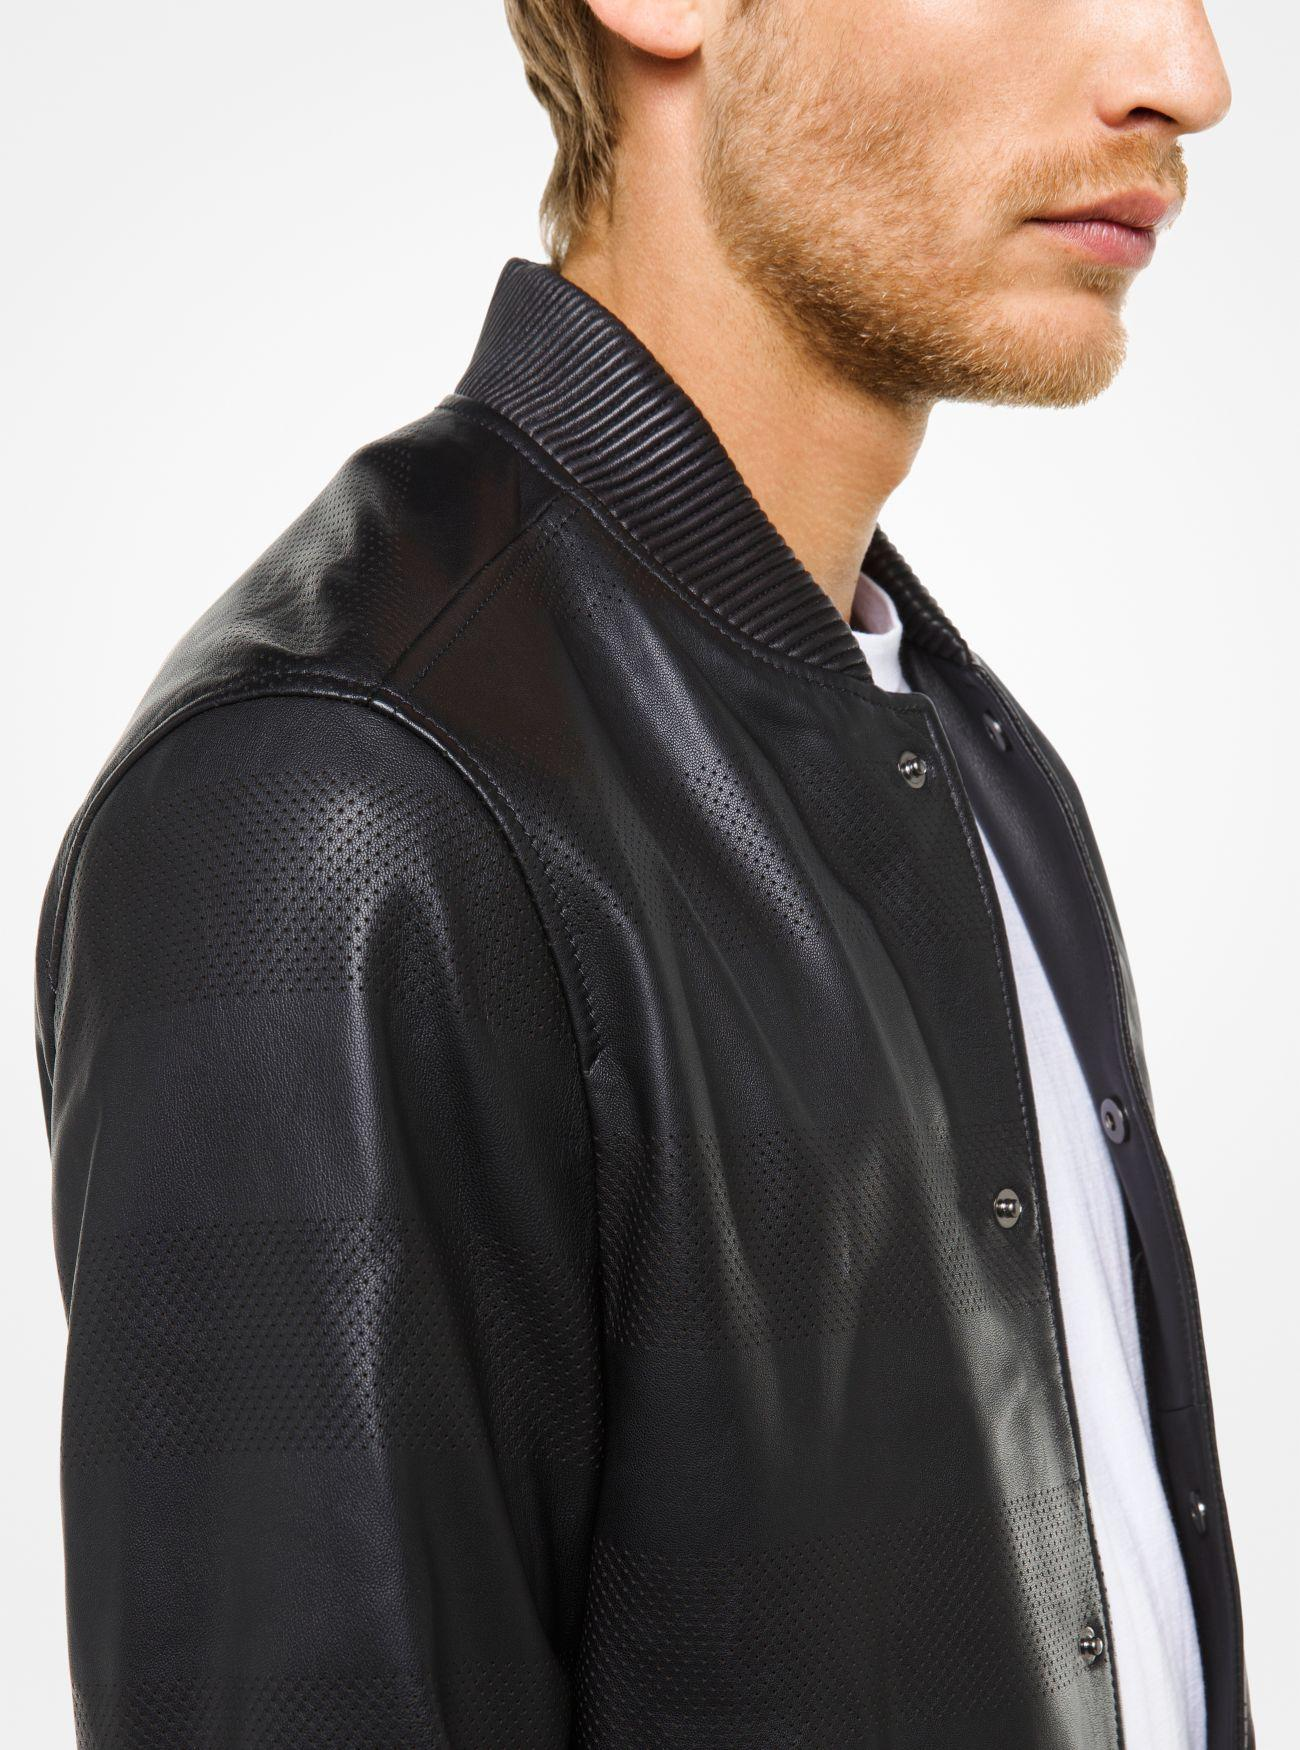 Michael Kors Perforated Leather Bomber Jacket in Black for Men